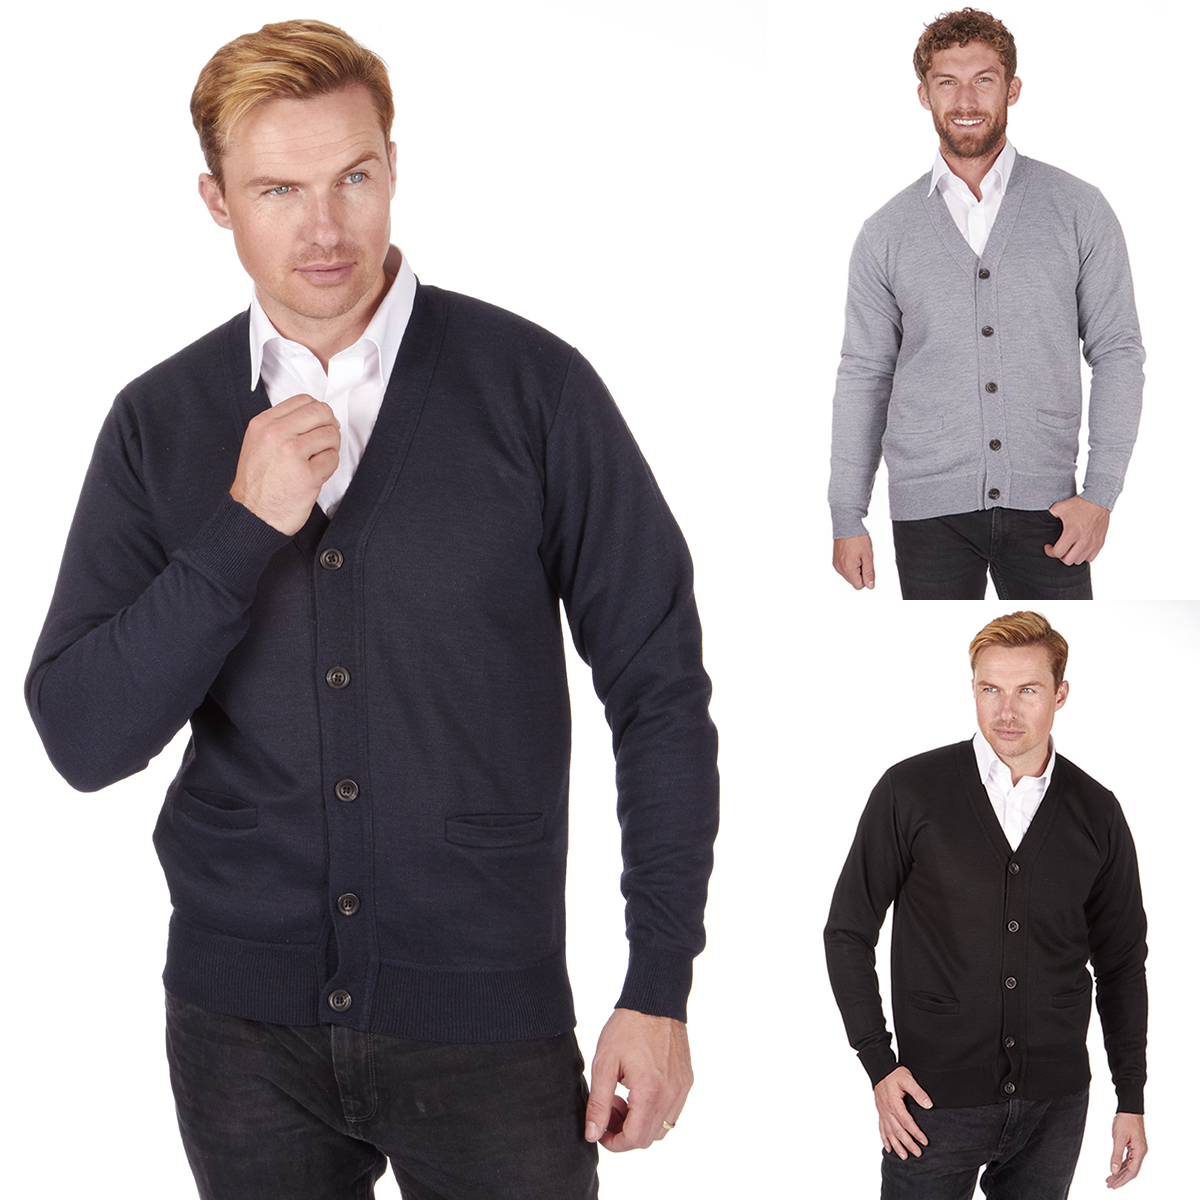 Men's Knitted Button Cardigan Sweater Casual Pull Over V Neck Golf ...